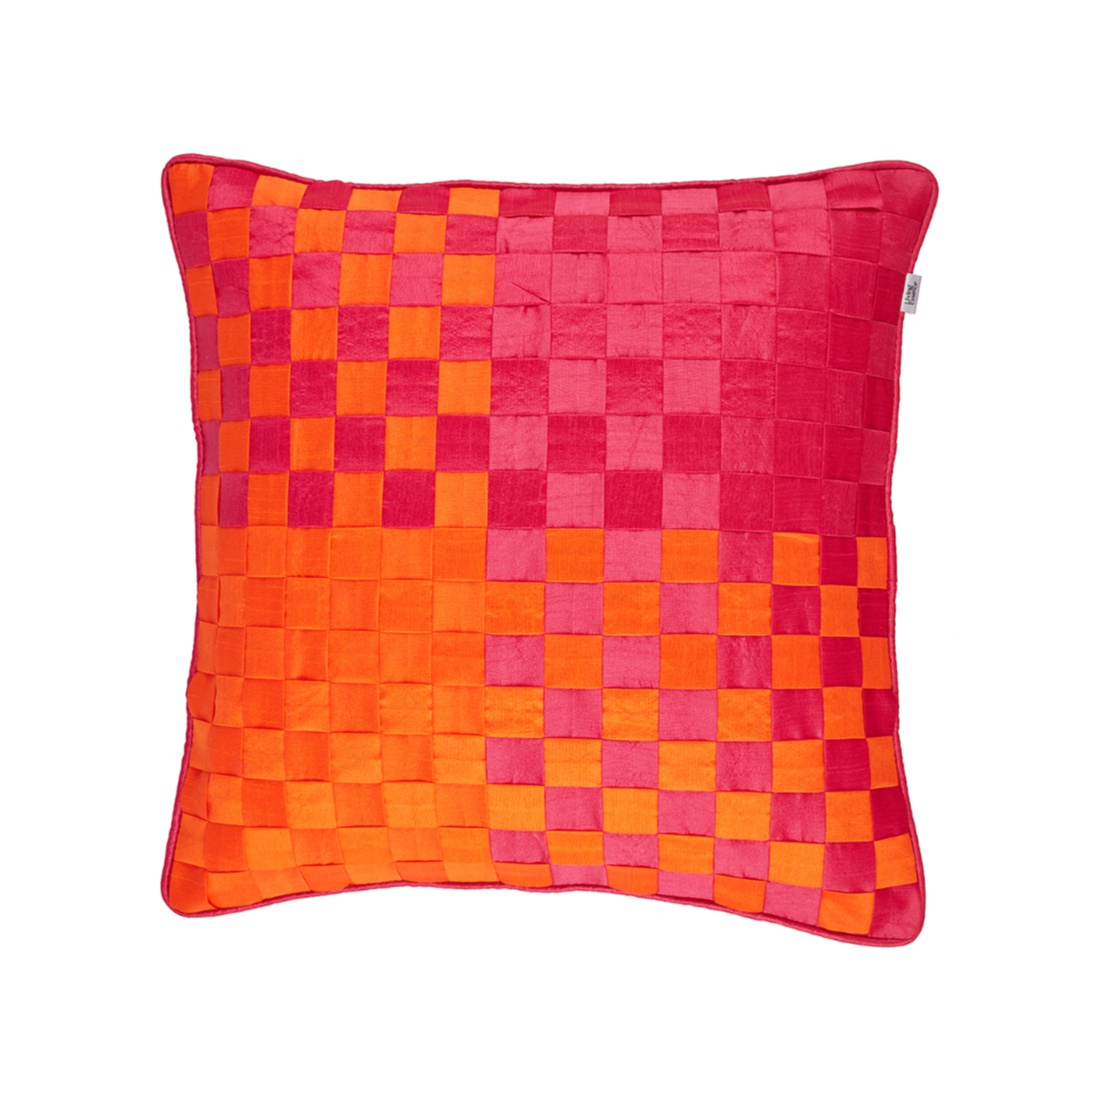 Basket Cushion Cover Fuchsia Polyester Cushion Covers in Fuchsia Colour by Living Essence